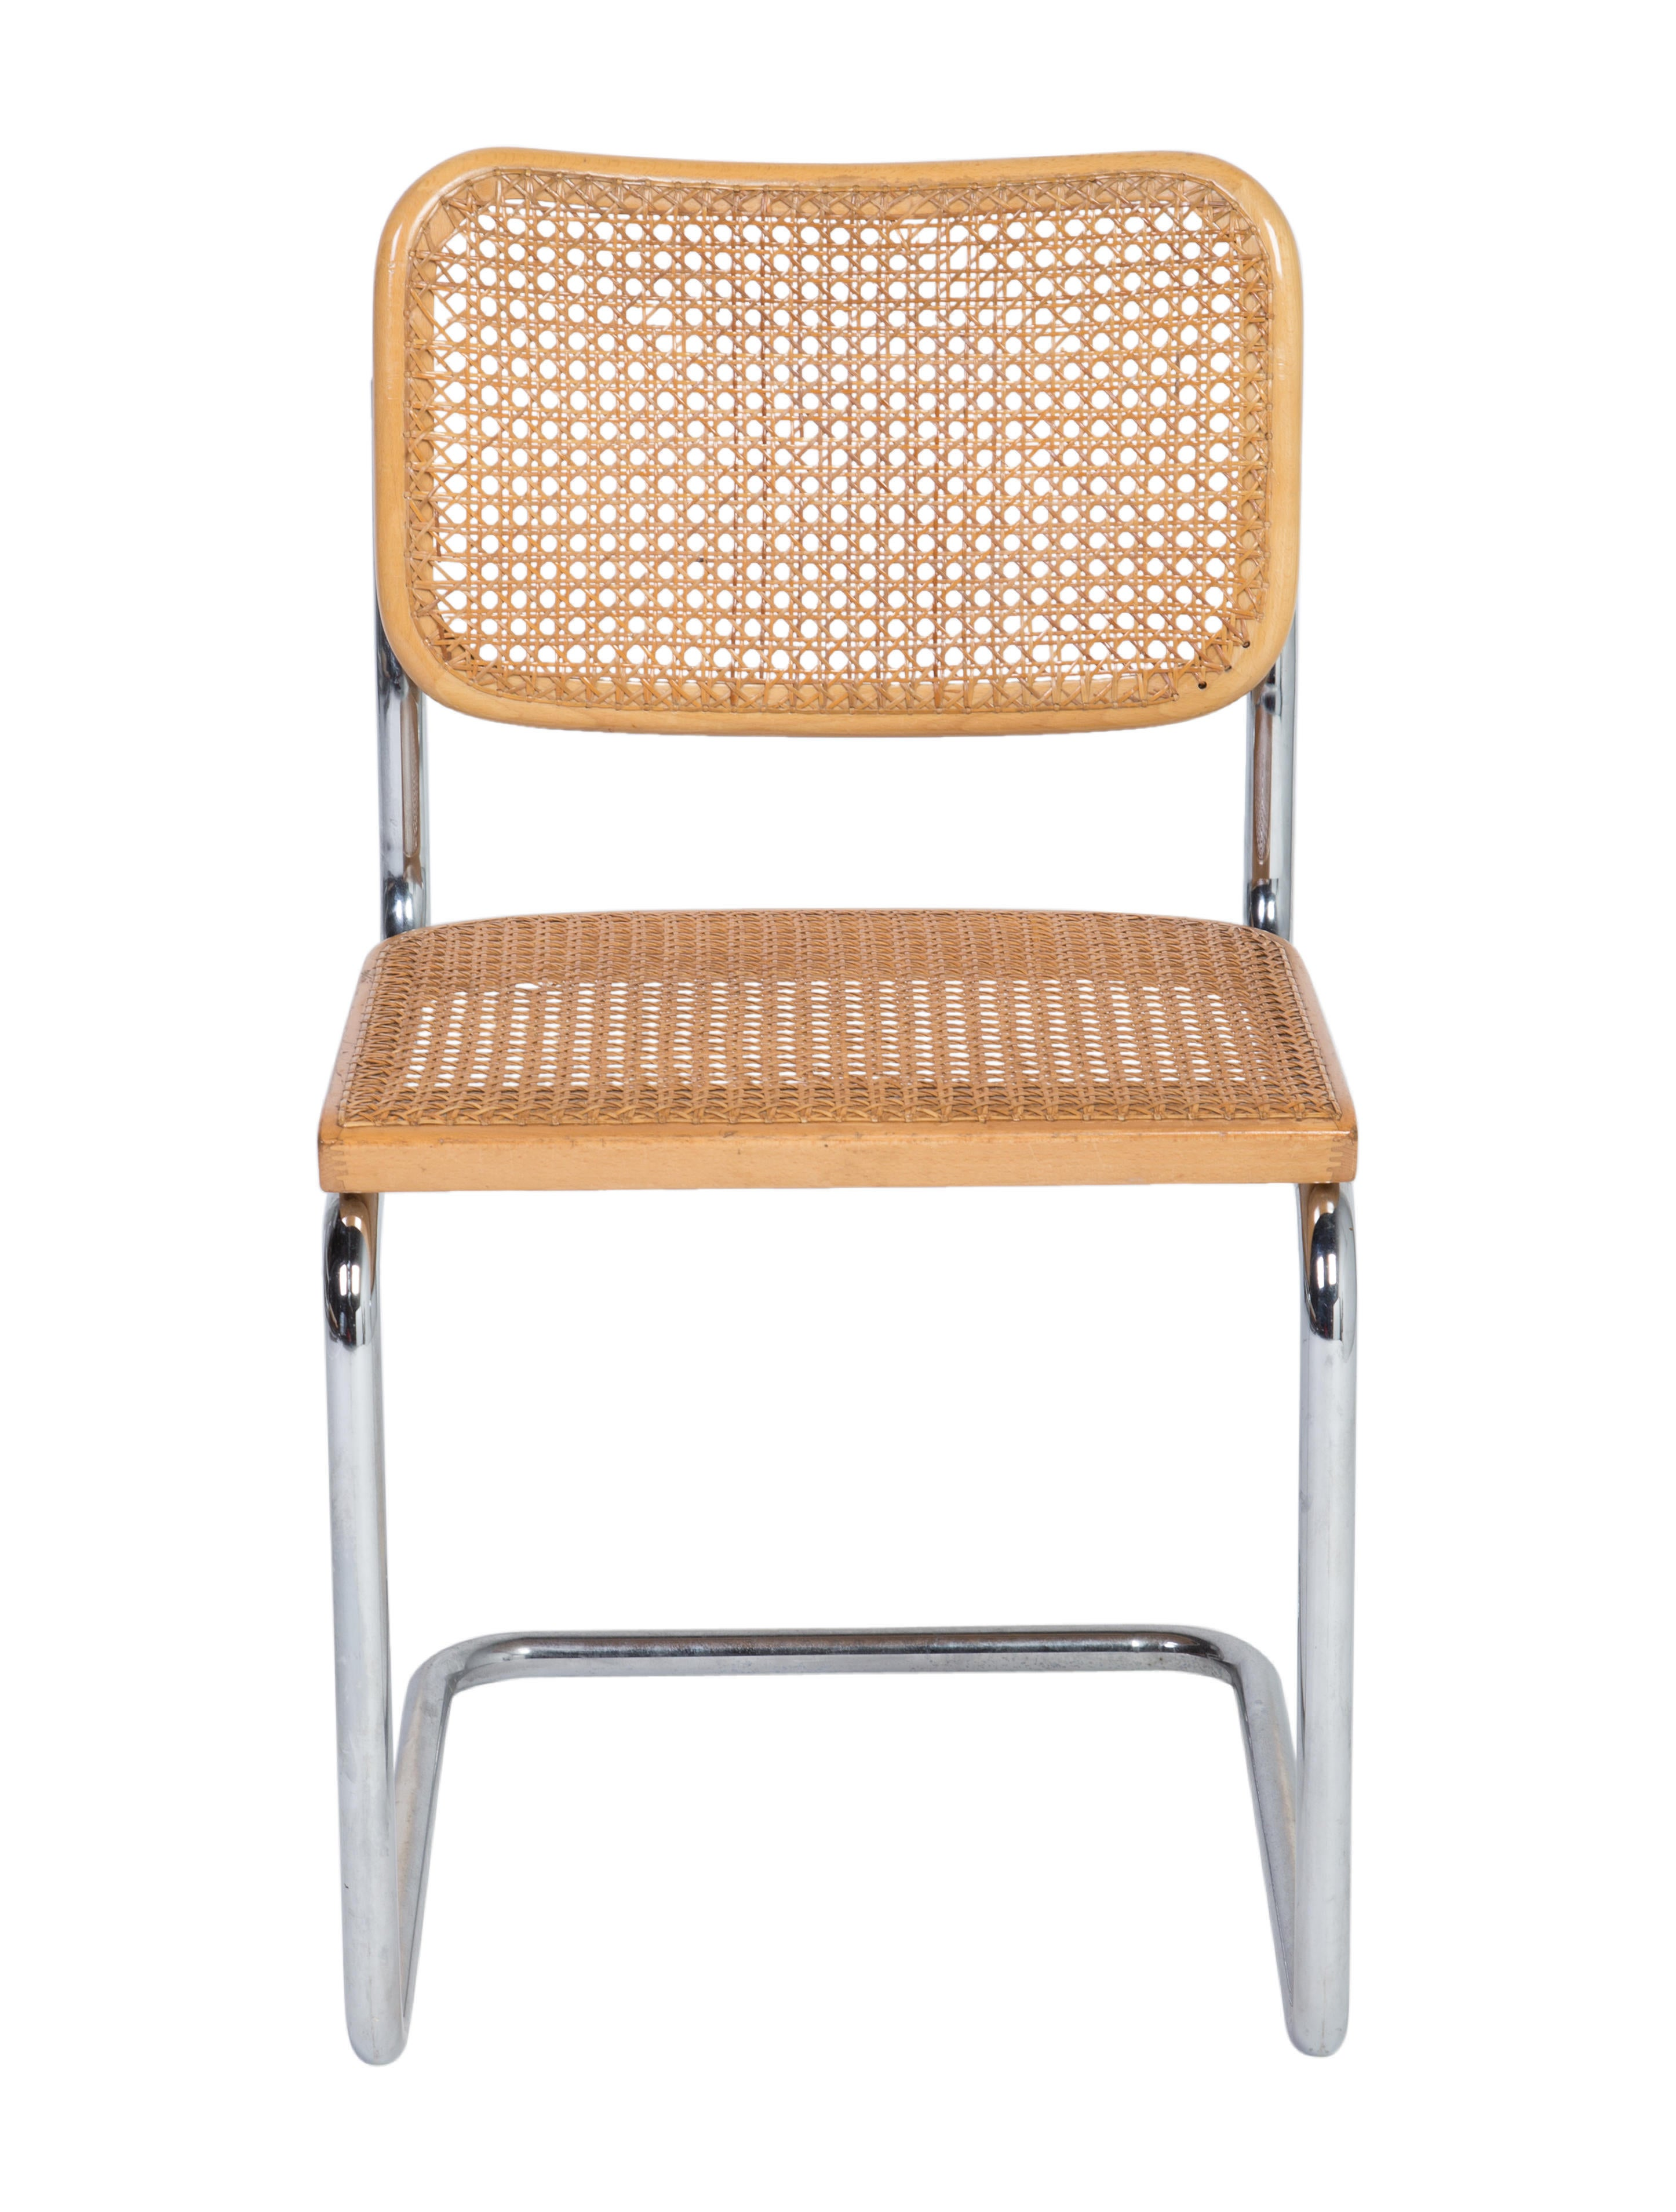 Knoll Marcel Breuer Cesca Side Chair Furniture KNL